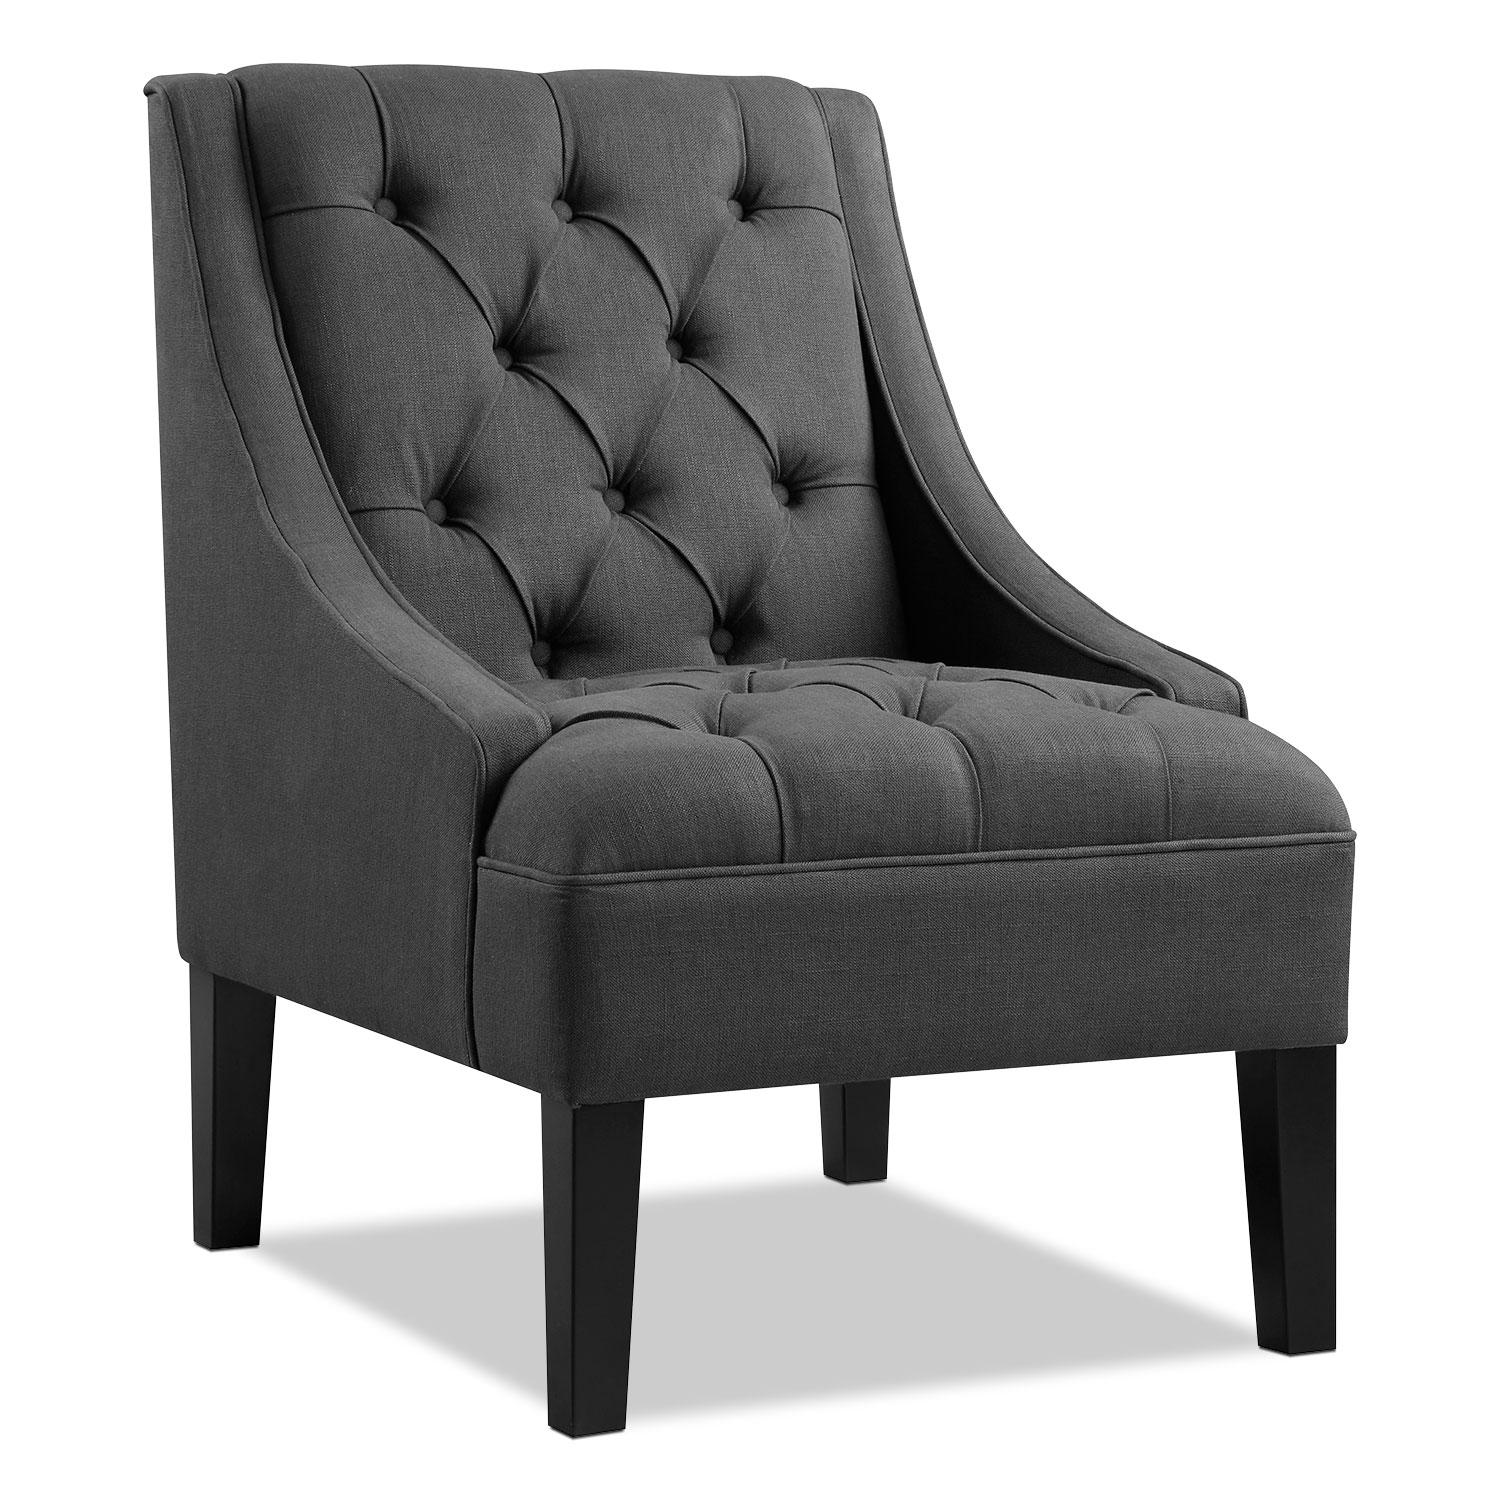 Greylin Accent Chair - Gray